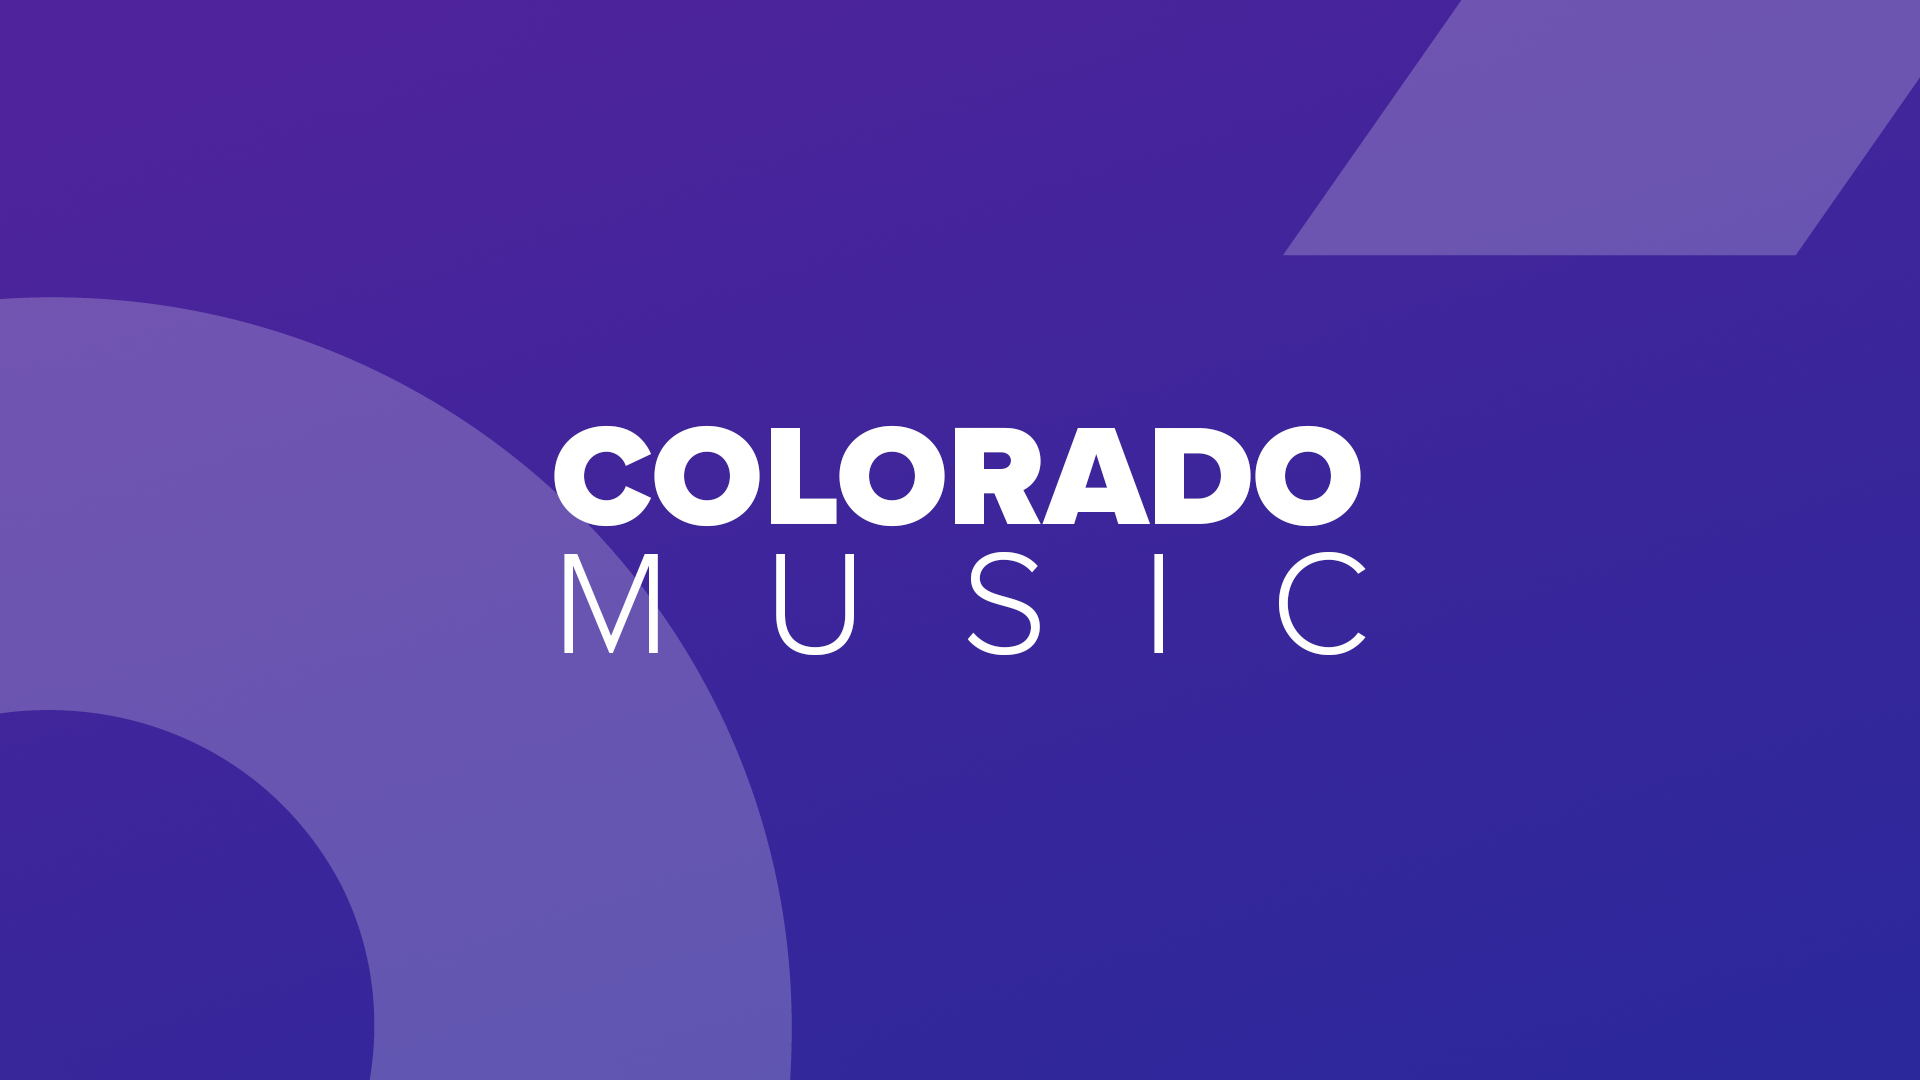 Colorado Music